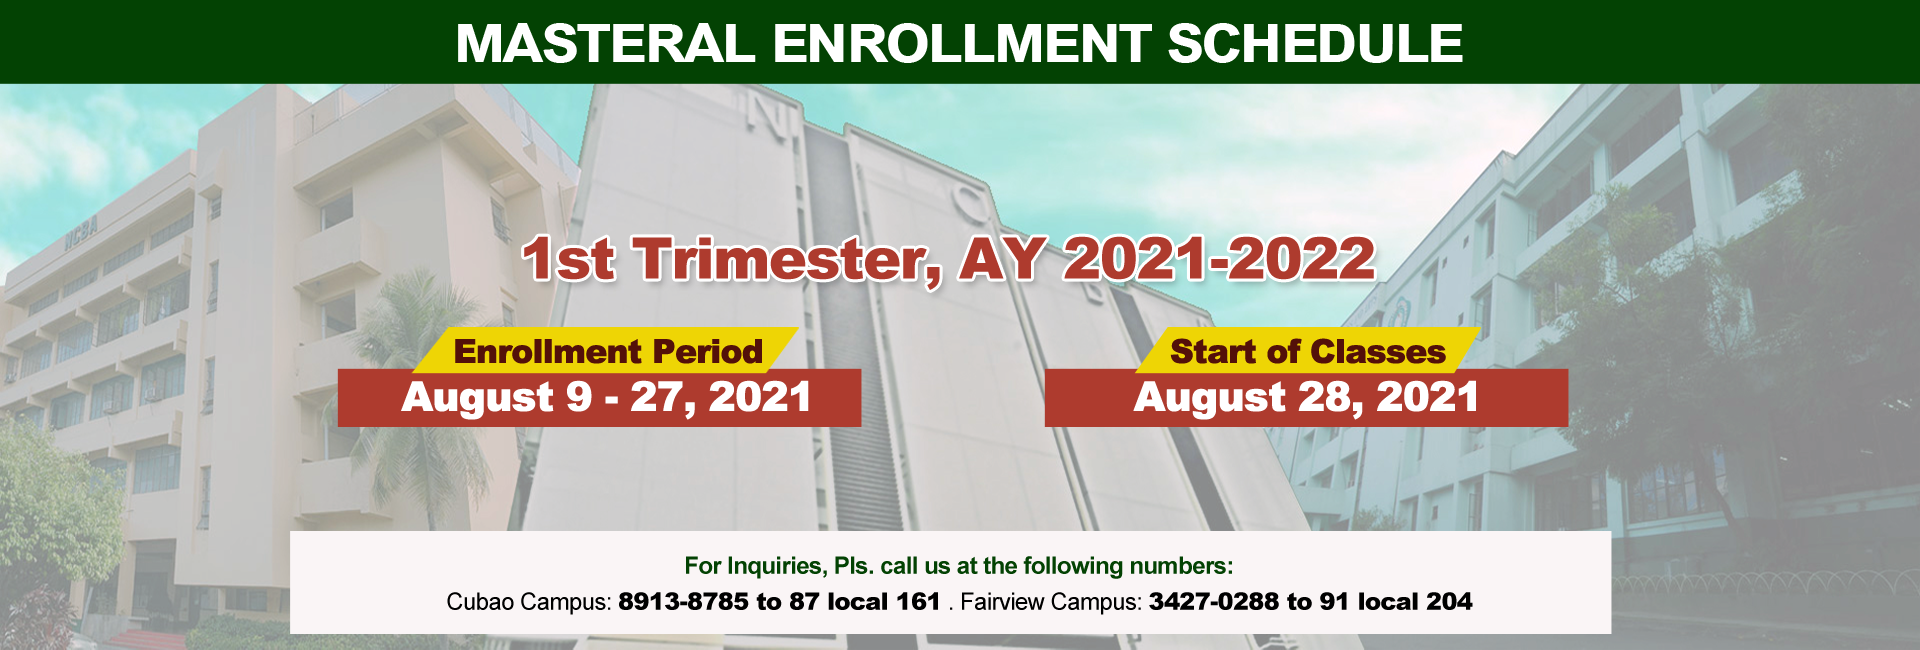 Masteral Enrollment Schedule (1st Trimester AY 2021-2022)